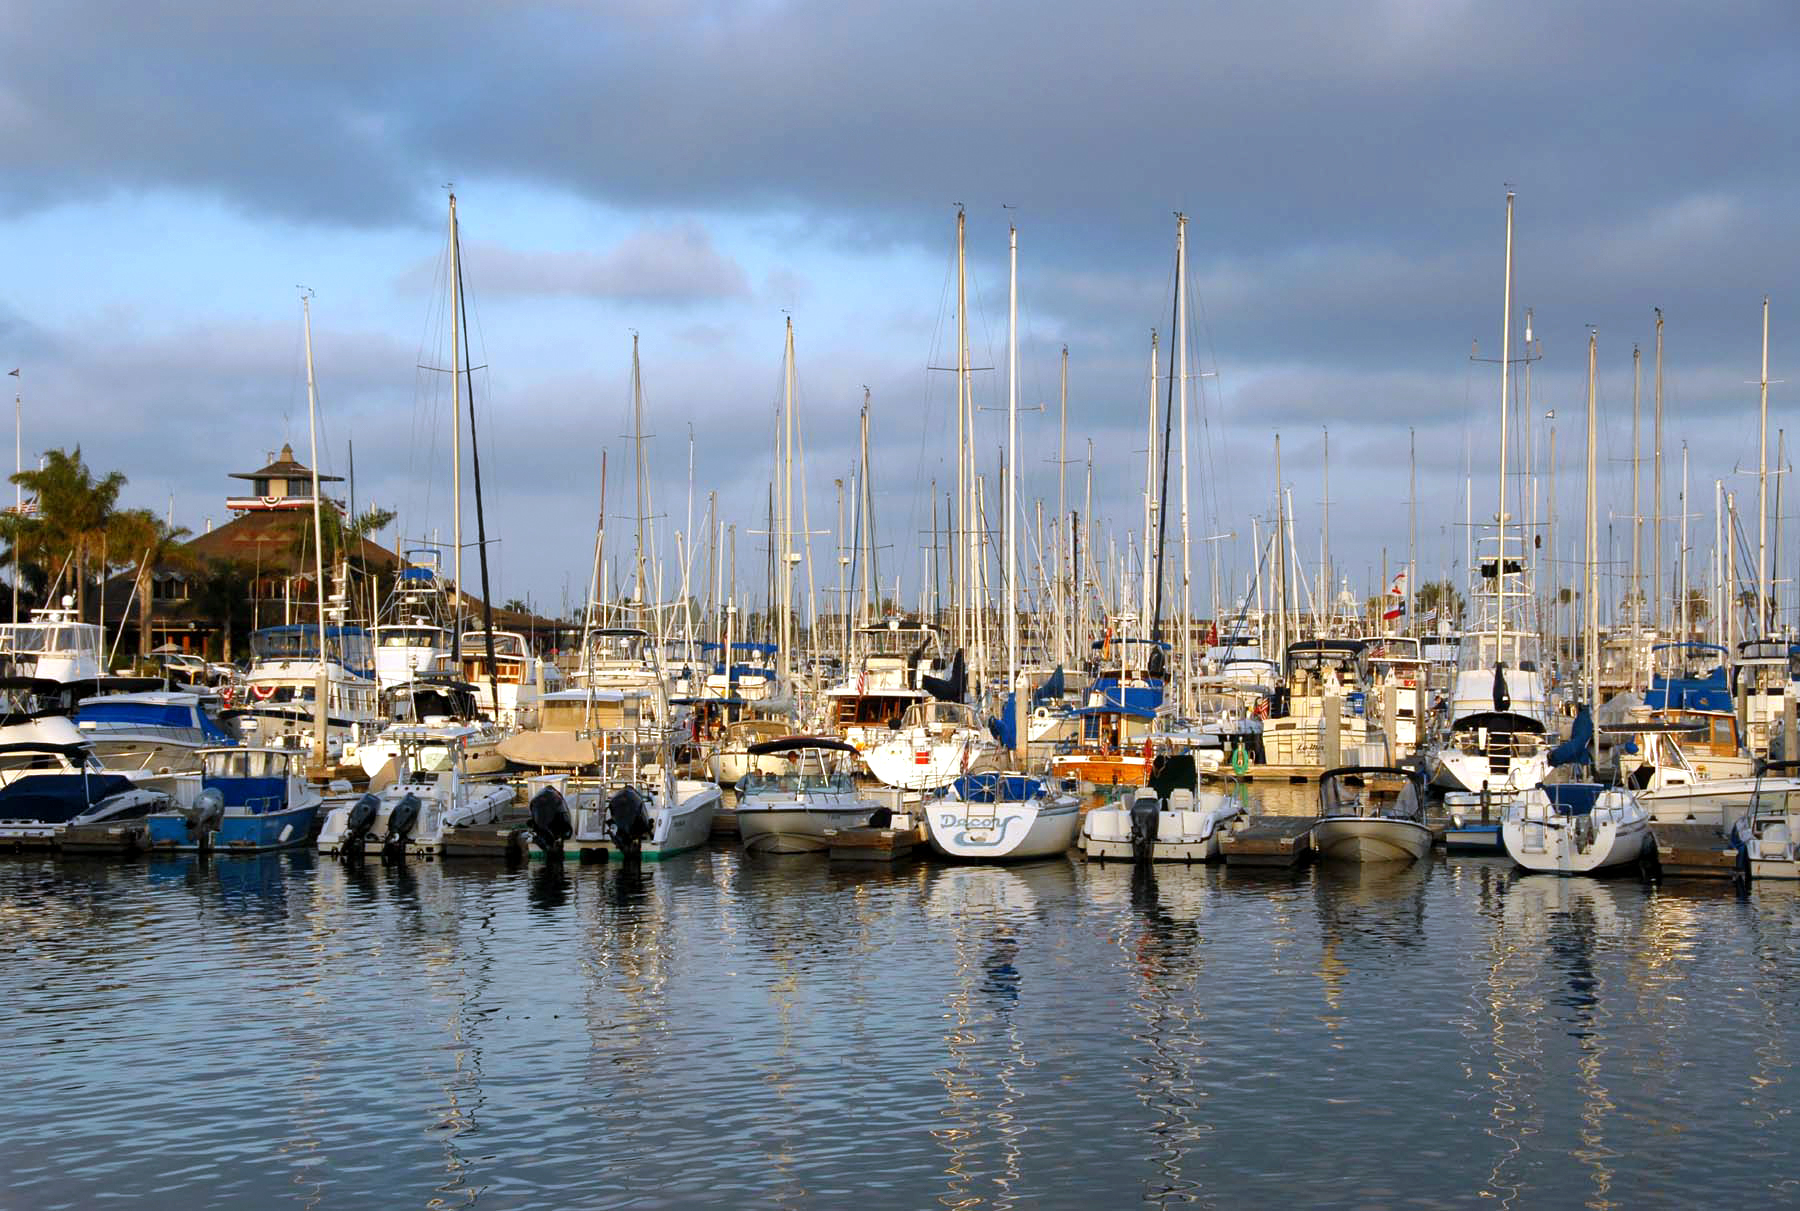 San Diego Unified Port District Boating Plan